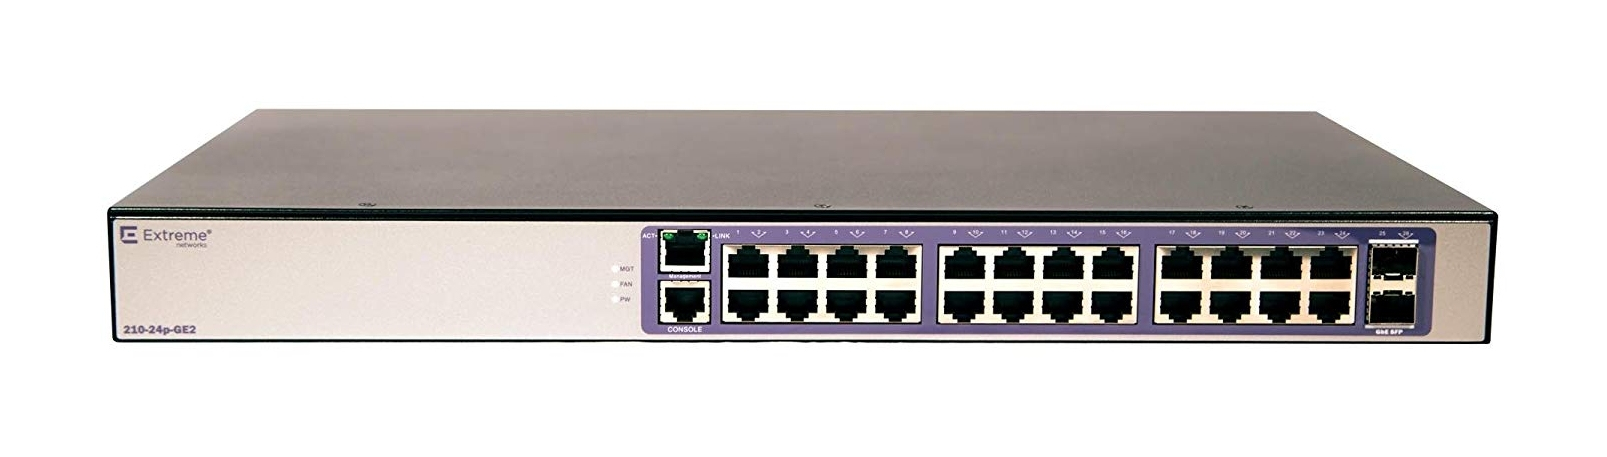 Extreme networks 210-24P-GE2 Managed L2 Gigabit Ethernet (10/100/1000) Bronze,Purple Power over Ethe